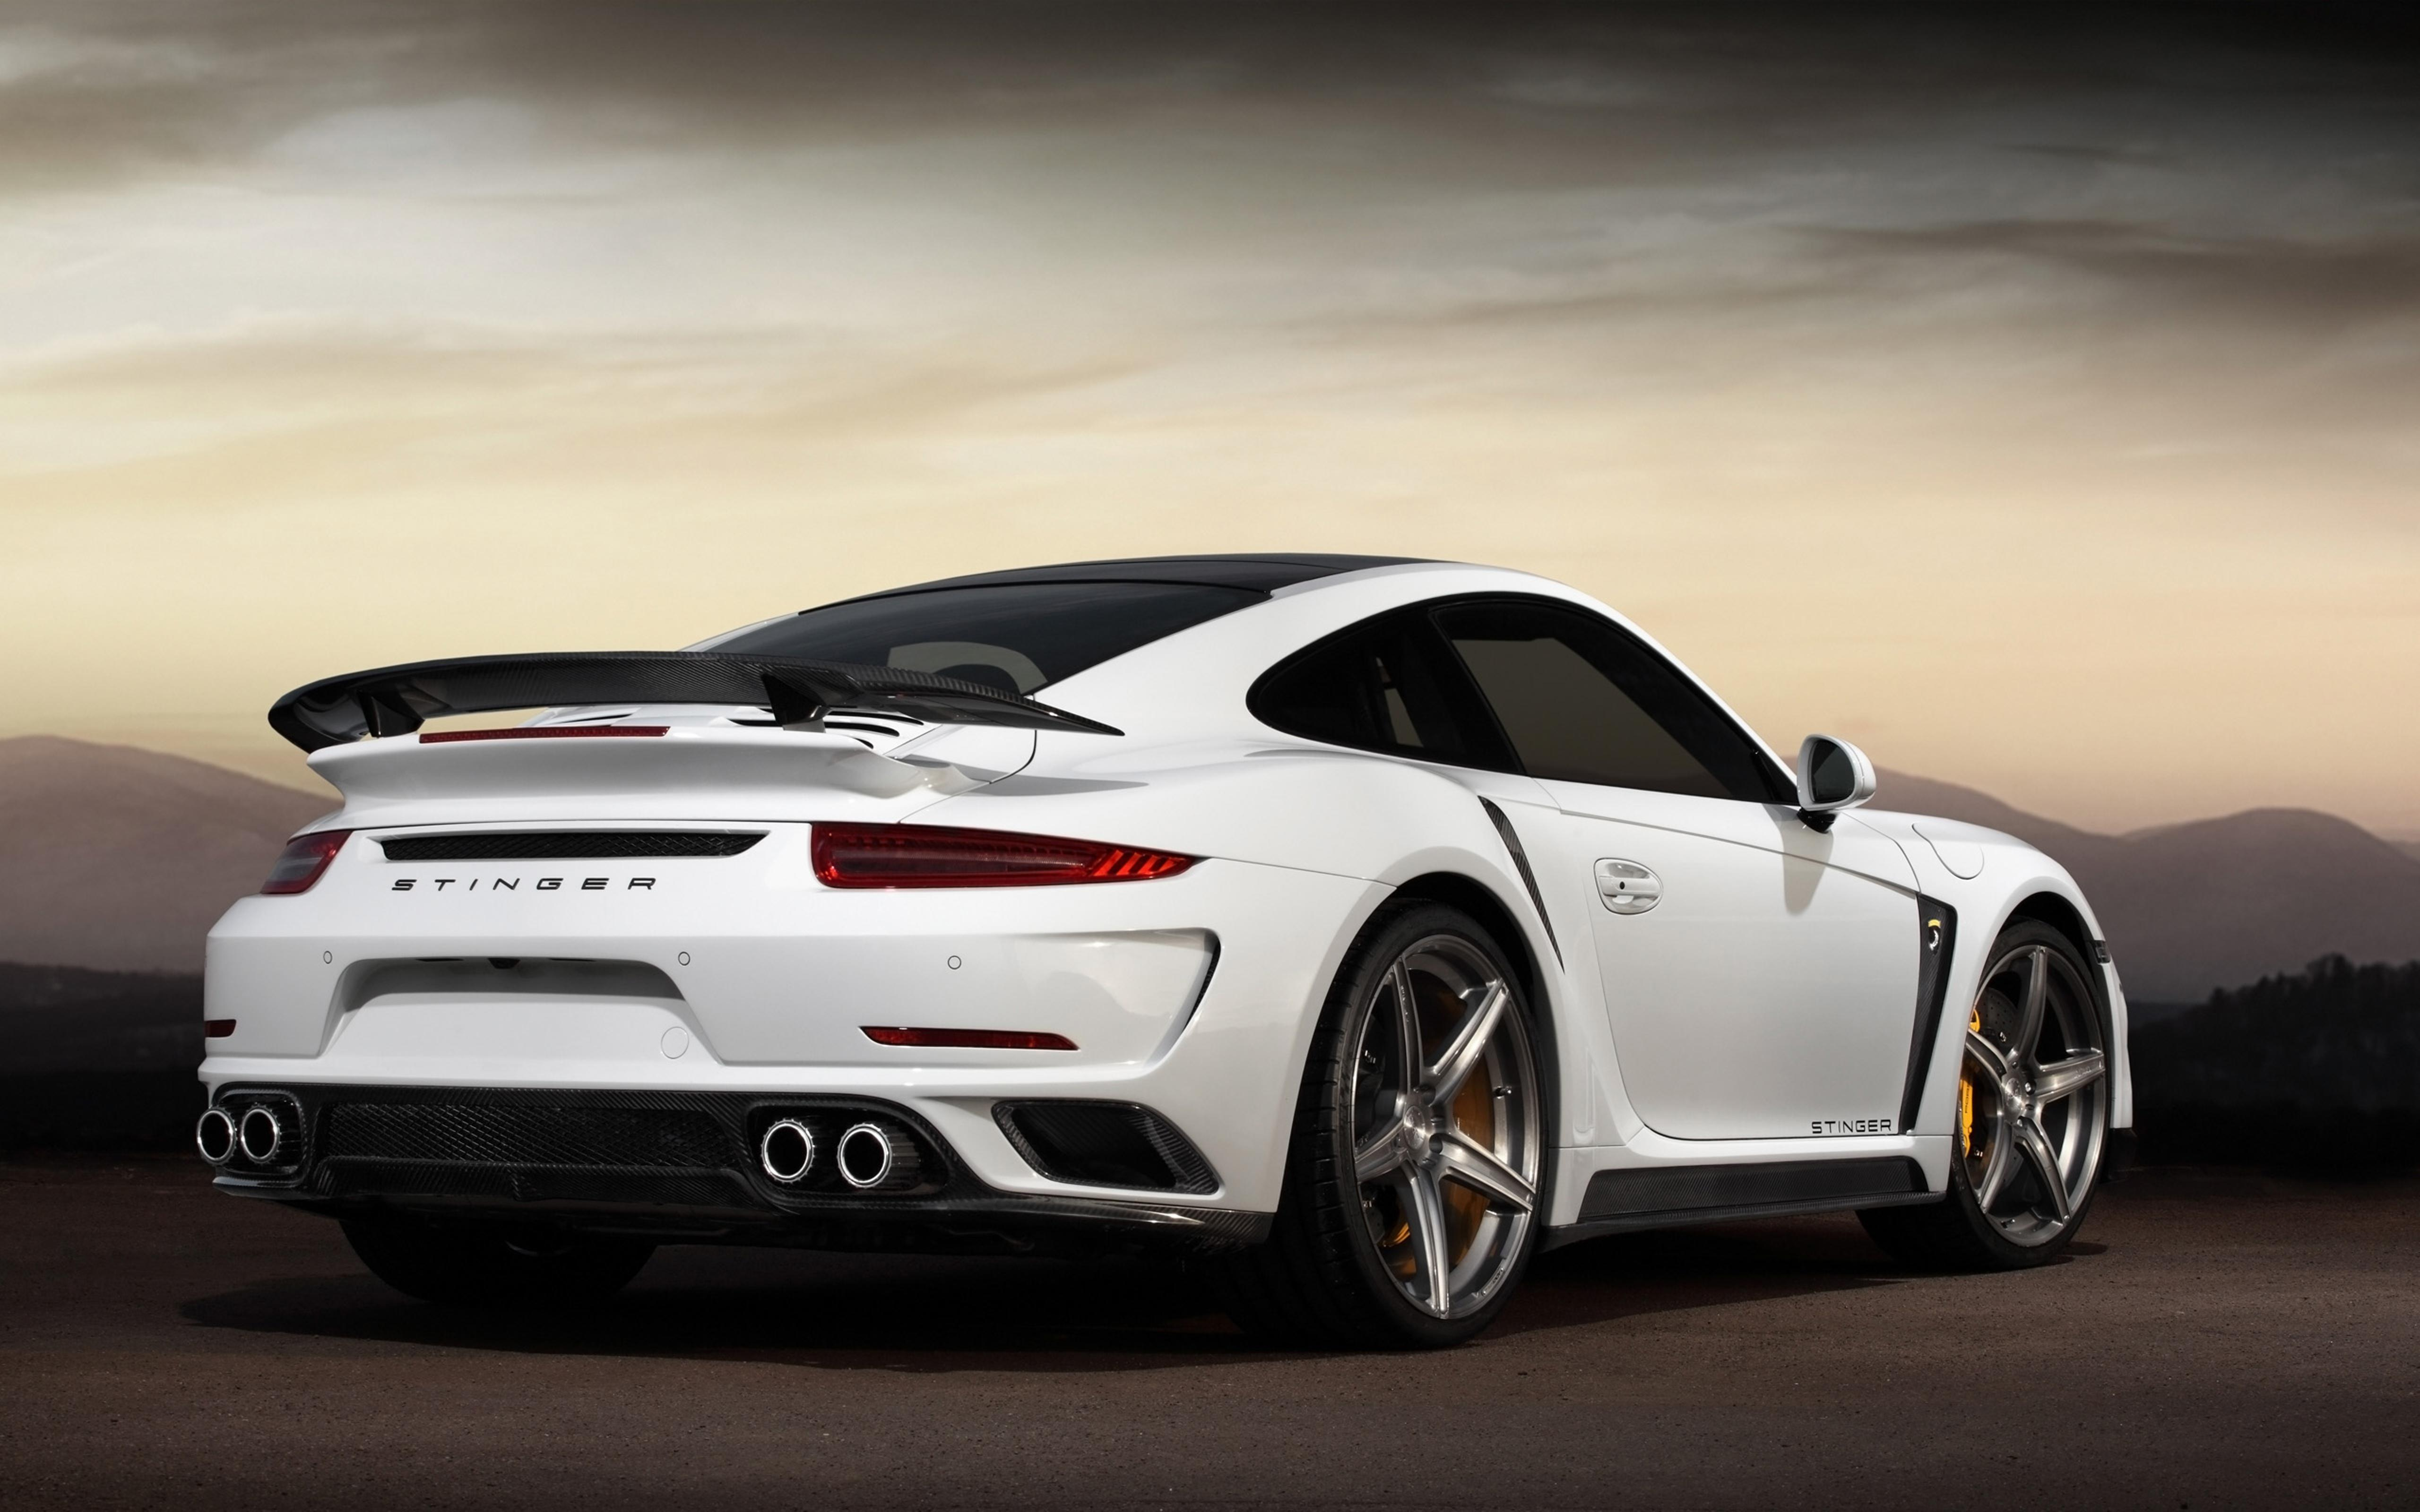 White Porsche 911 Turbo S Stinger Wallpaper Download 5120x3200